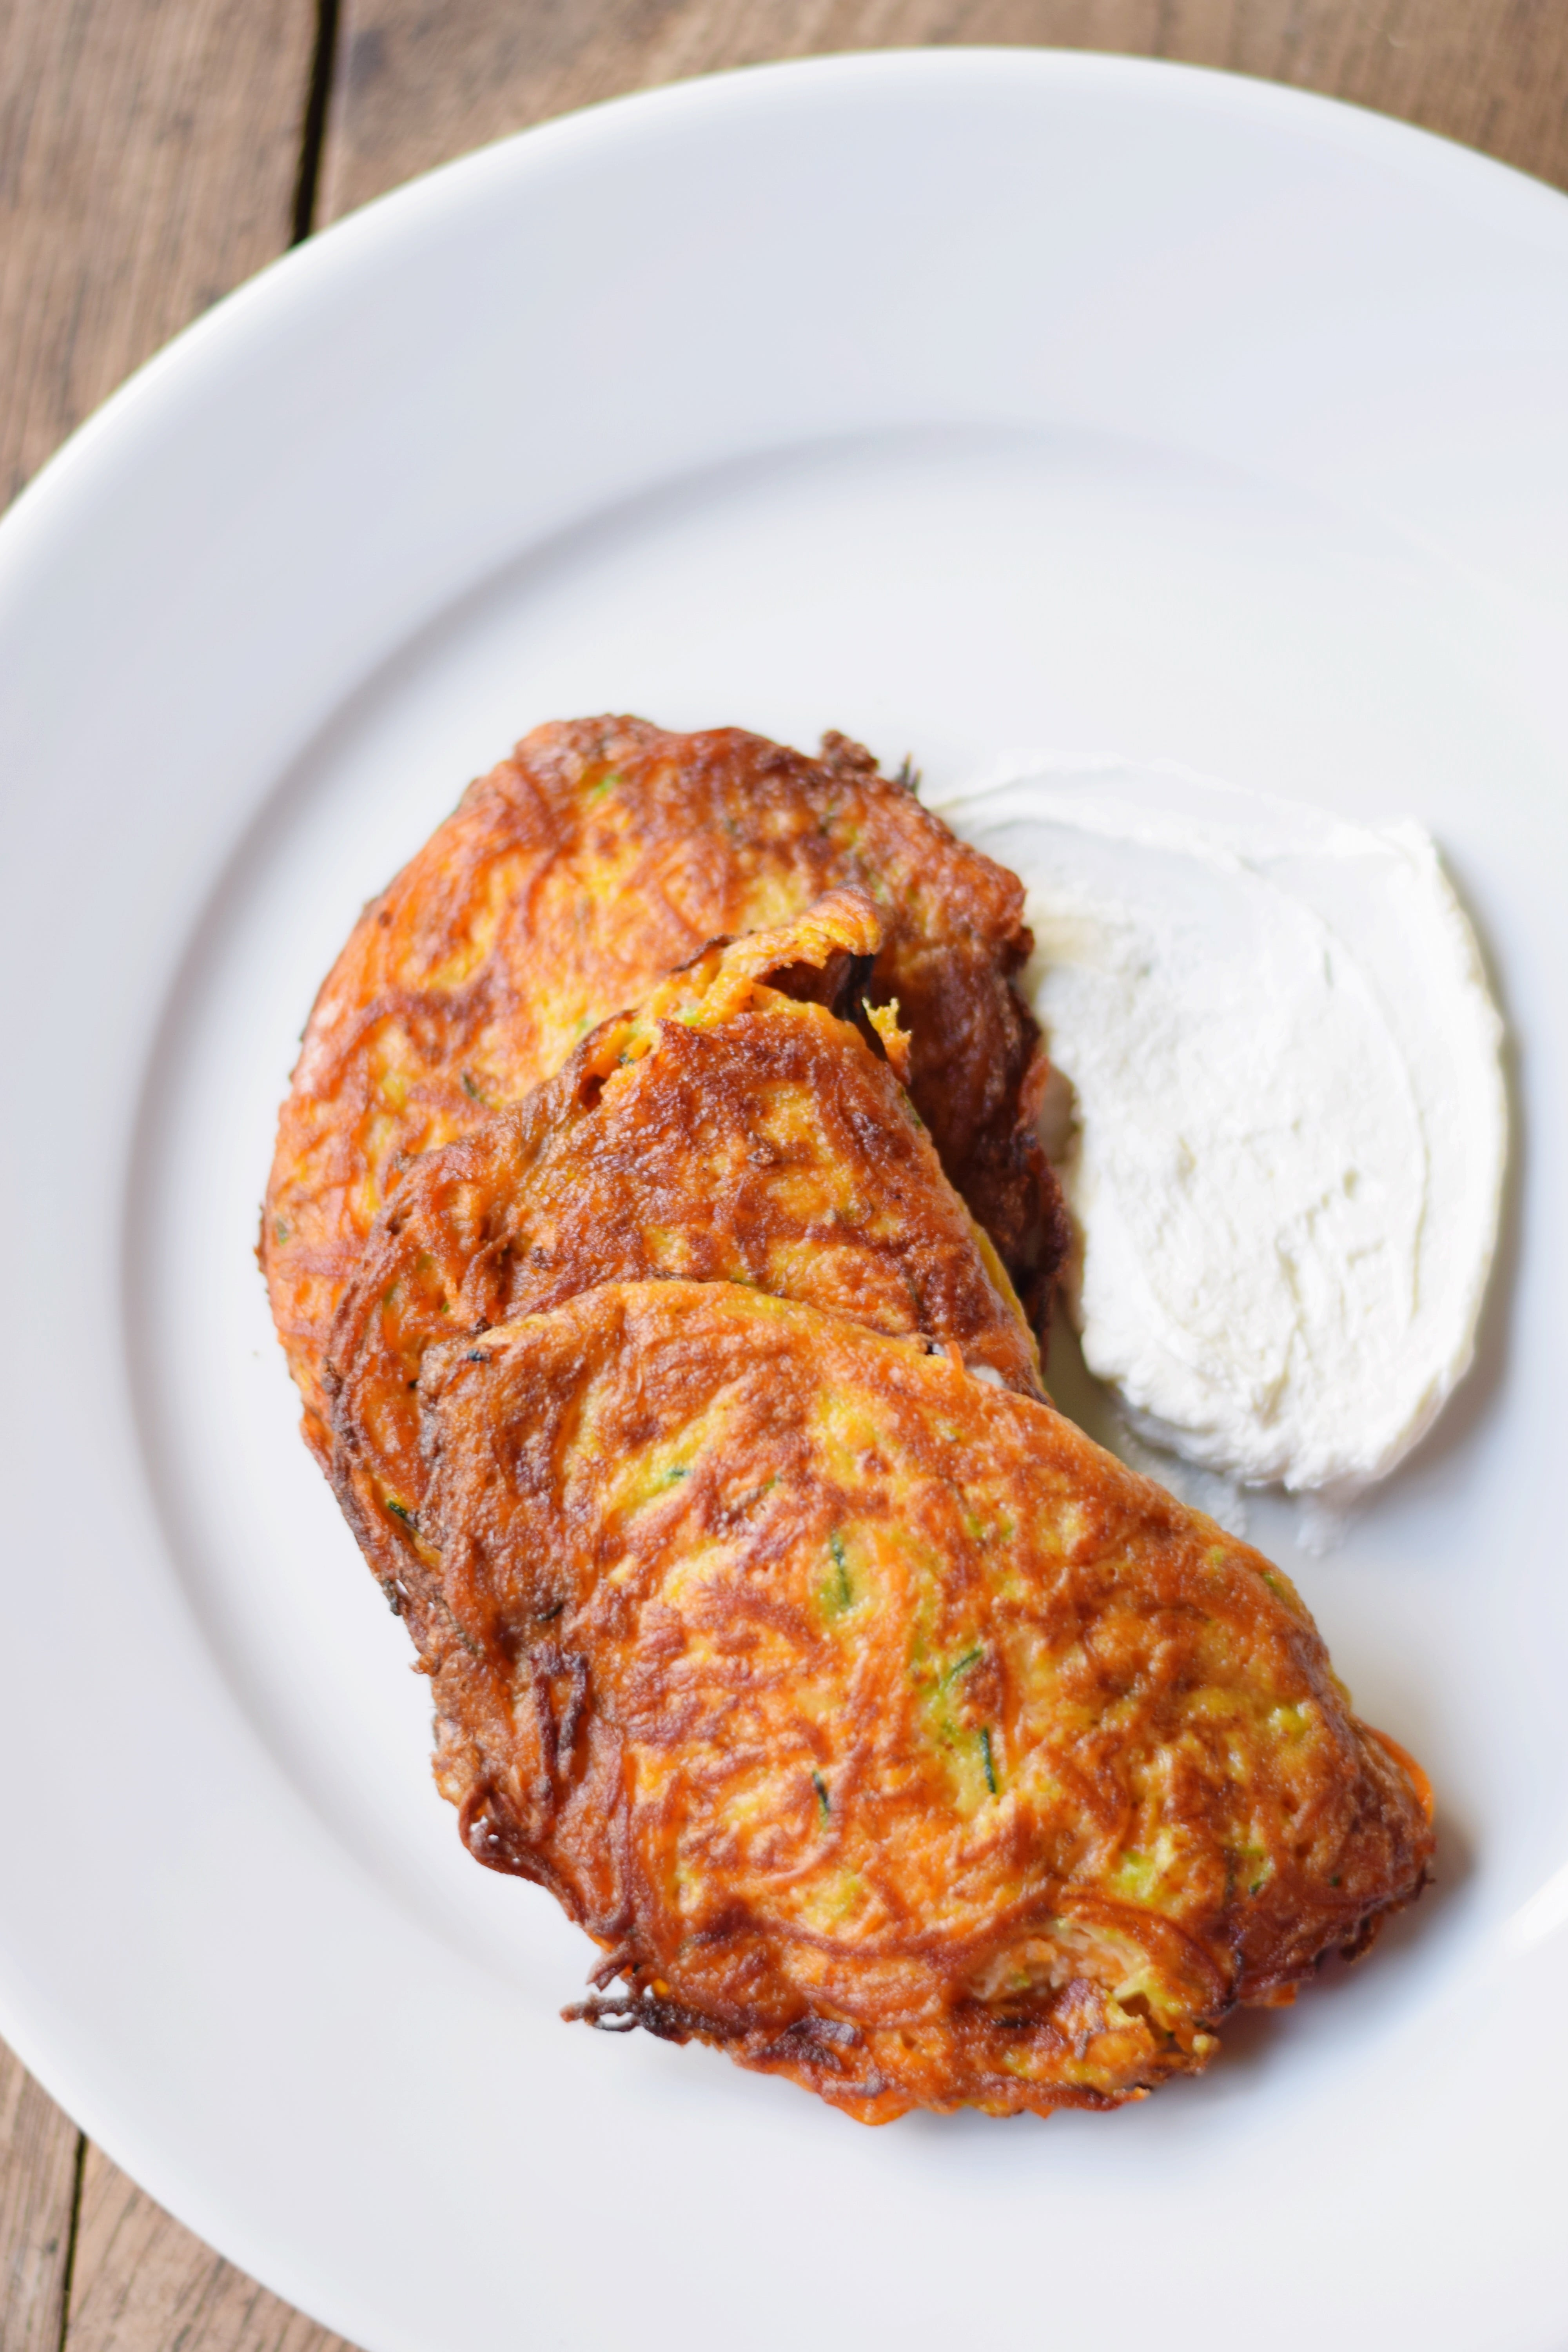 ZUCCHINI + SWEET POTATO FRITTERS WITH GOAT CHEESE | Zucchini Fritters - Sweet Potato Fritters - Vegetarian Snack - Zucchini Fritters Recipe - Best Zucchini Fritters - Le Jardin Marrakech - Green Giant Veggie Spirals - Vegetarian Meals - Recipes With Goat Cheese - #vegetarian #veggiespirals #recipe